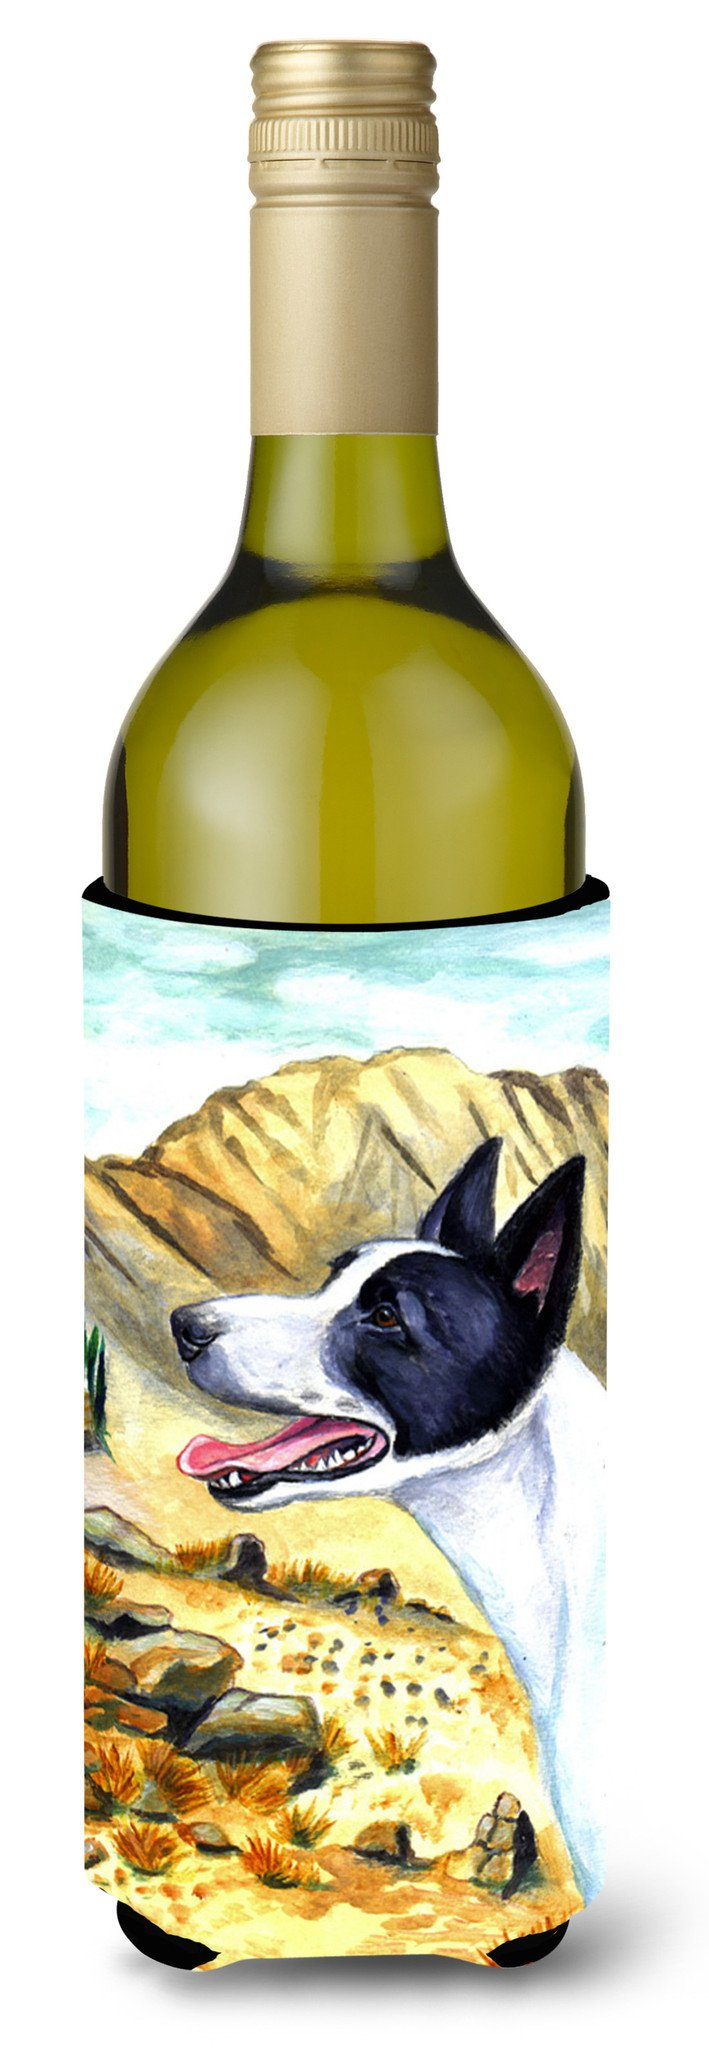 Canaan Dog Wine Bottle Beverage Insulator Beverage Insulator Hugger by Caroline's Treasures